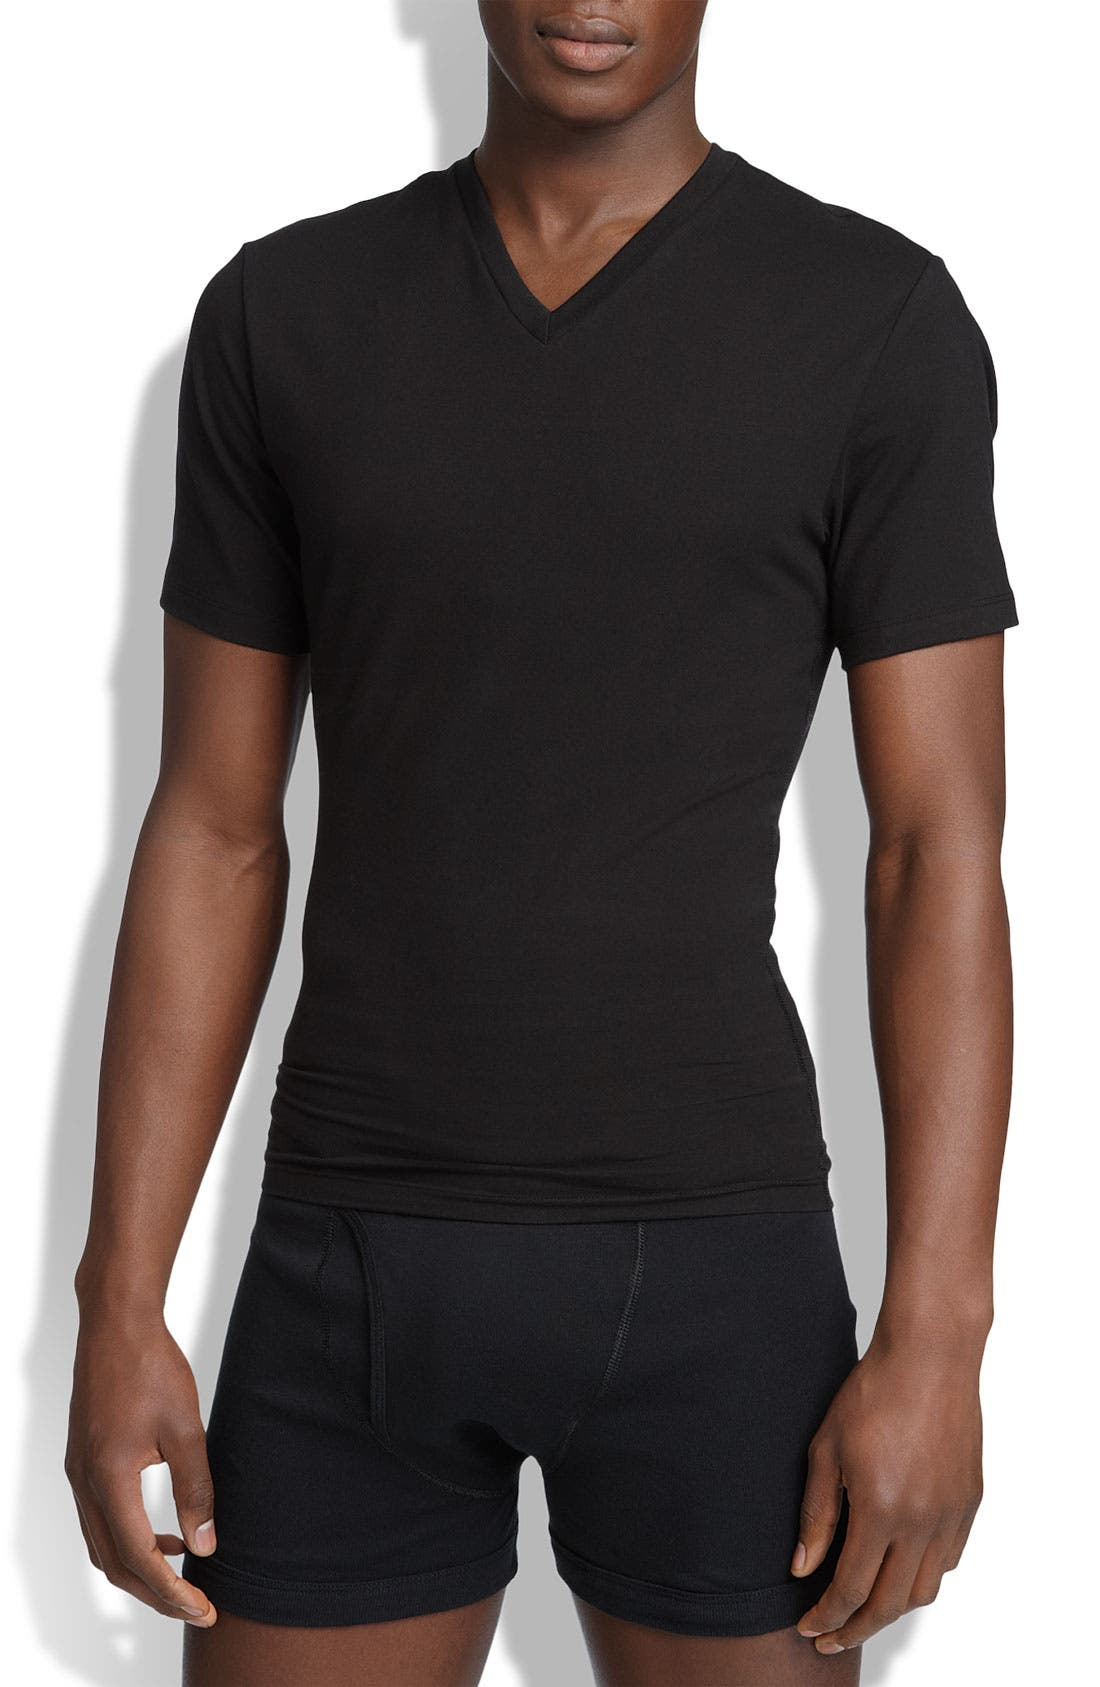 V-Neck Cotton Compression T-Shirt,                             Main thumbnail 1, color,                             Black